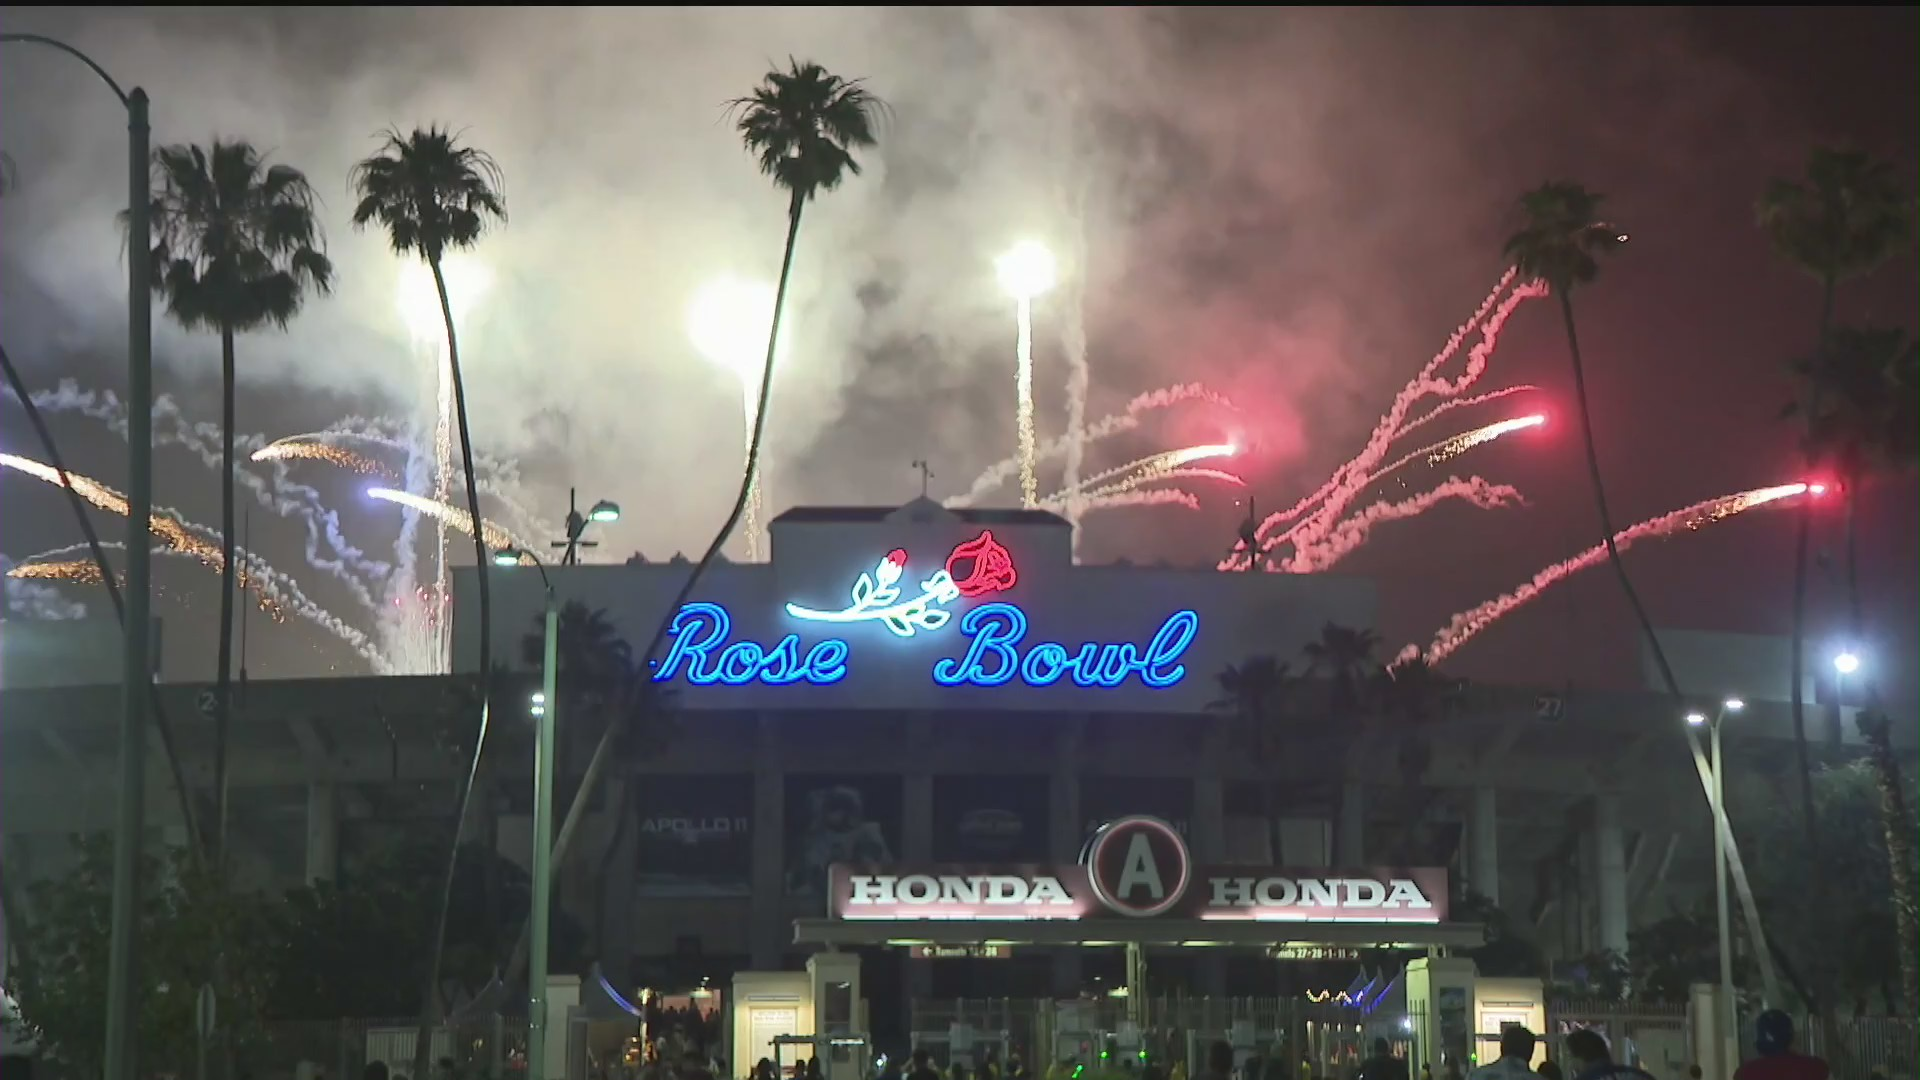 Fireworks from a show at the Rose Bowl is seen in this file photo. (KTLA)